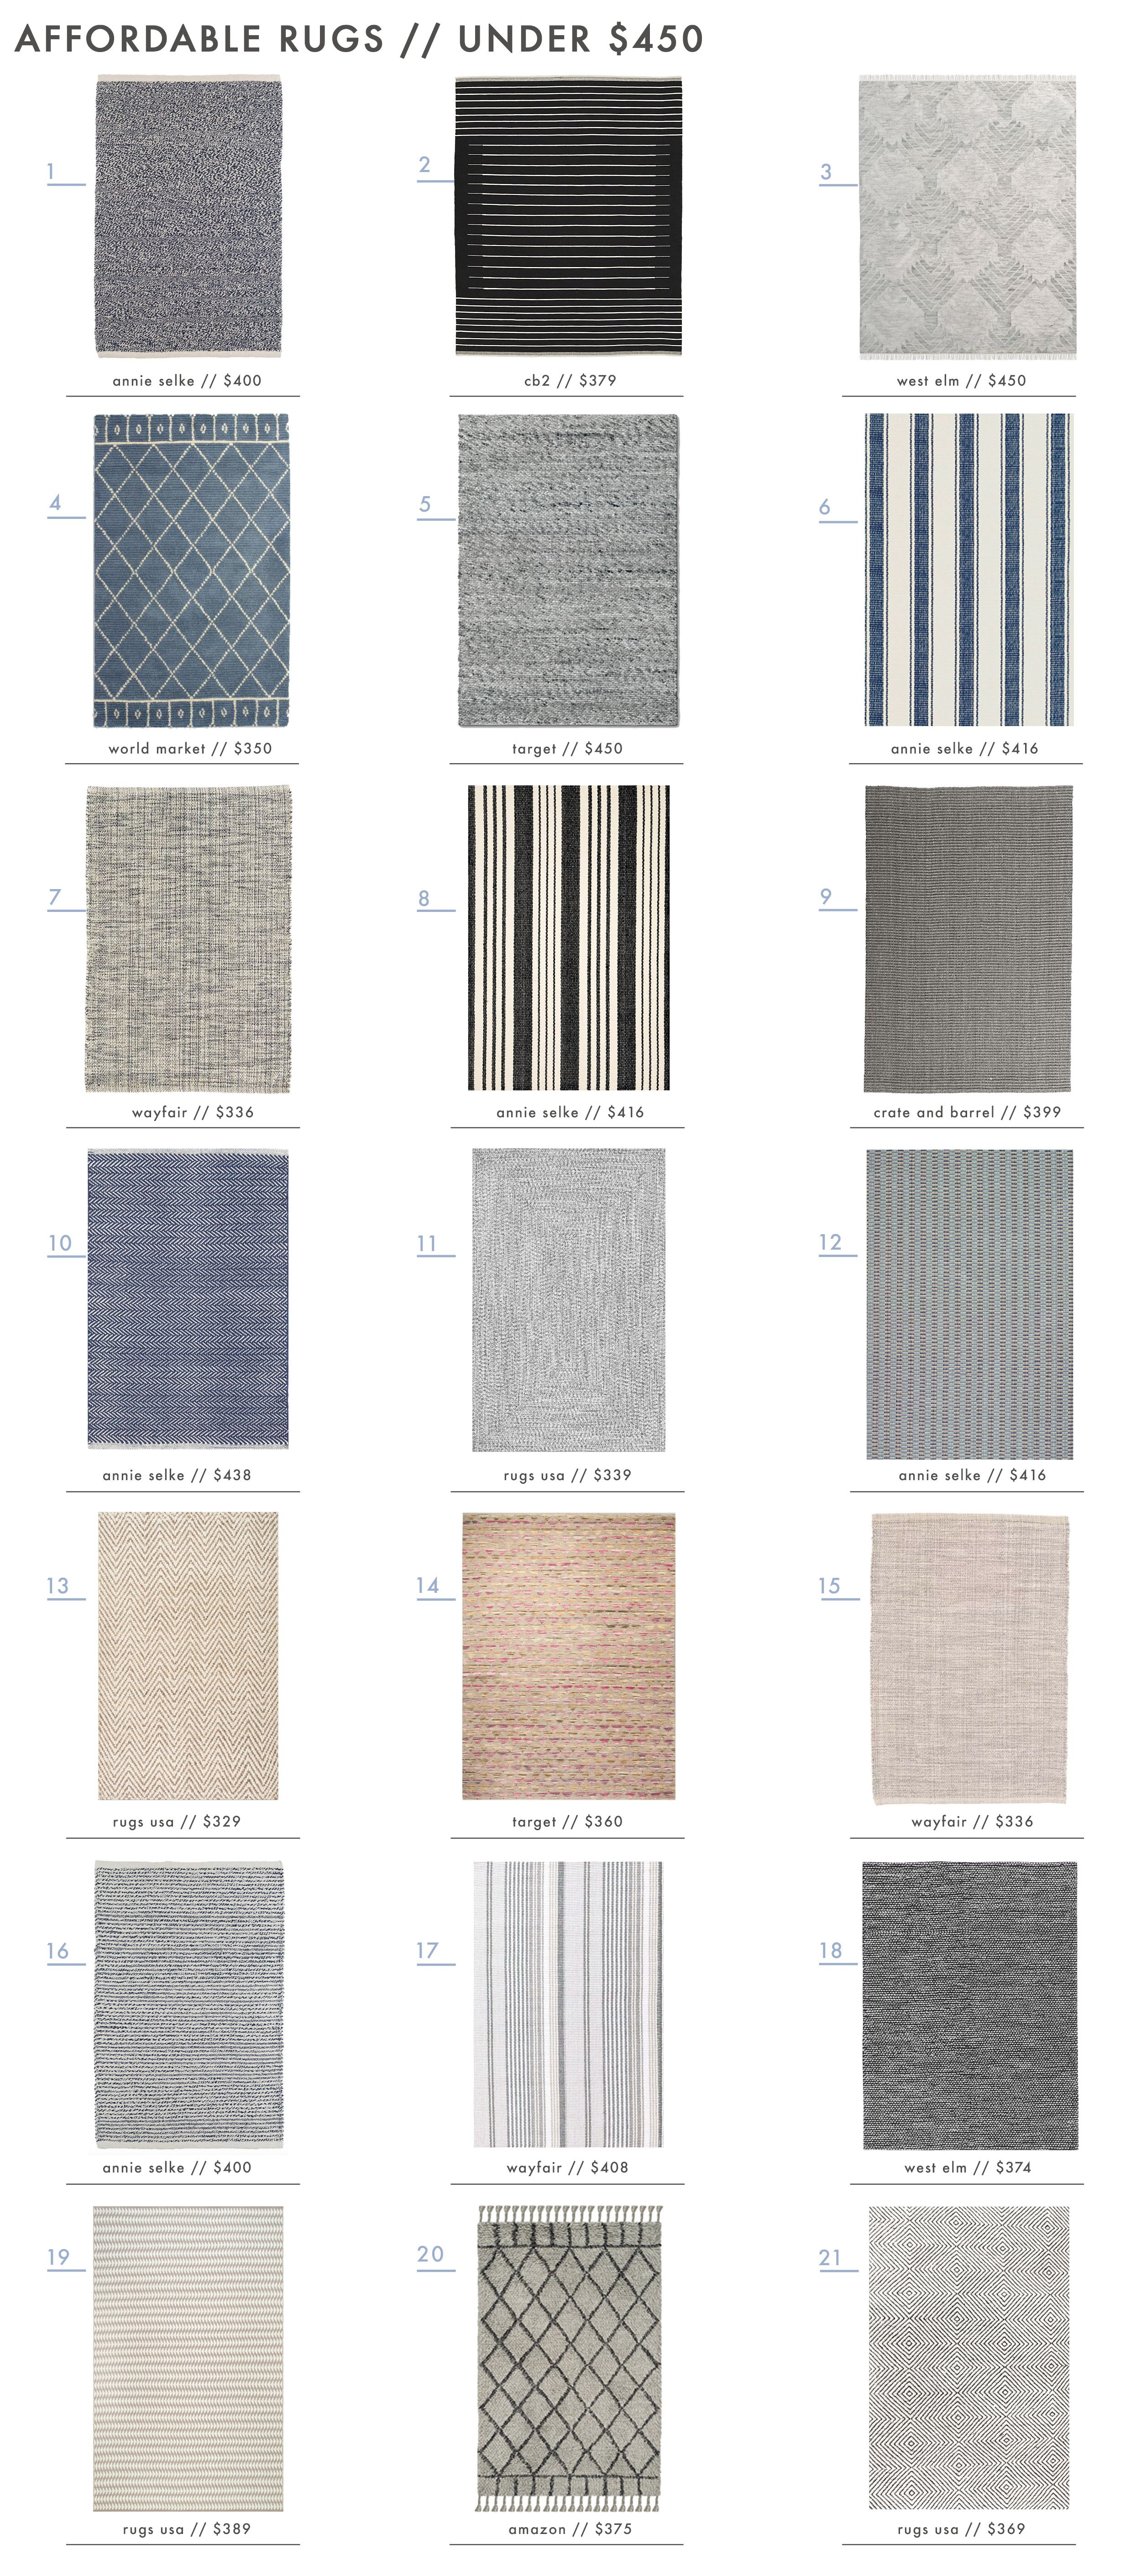 60 Affordable Area Rugs Roundup How To